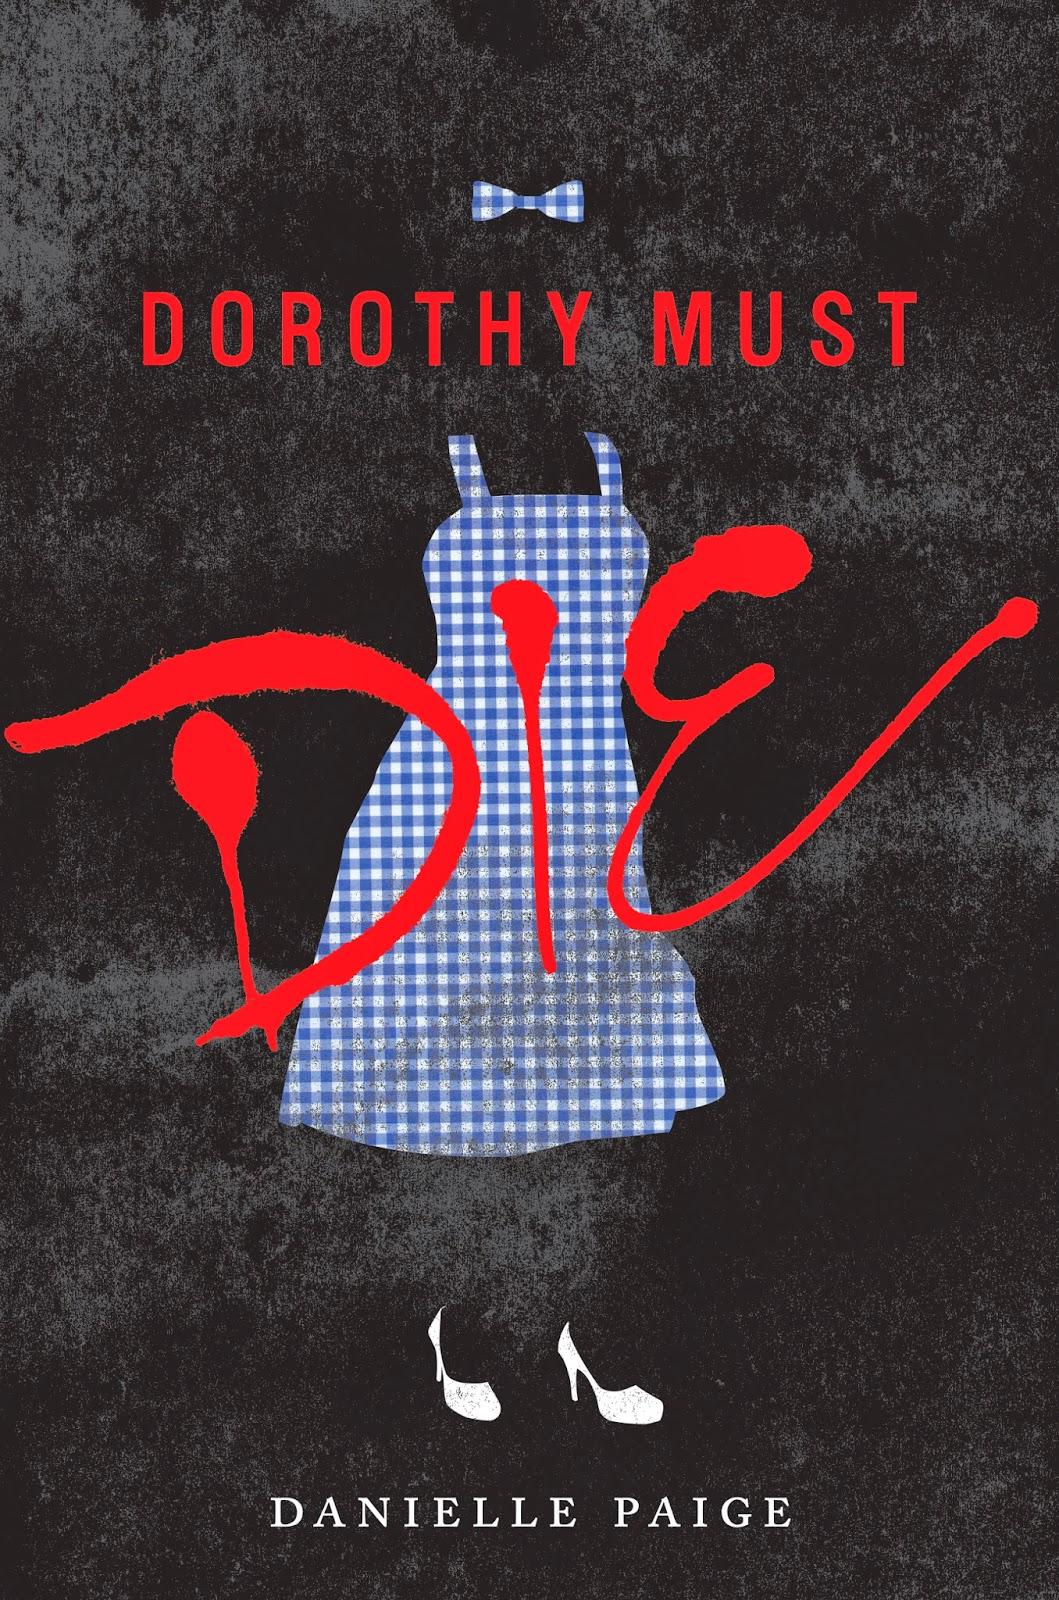 """Dorothy Must Die"" – Thoughts on a radical new entry in ..."